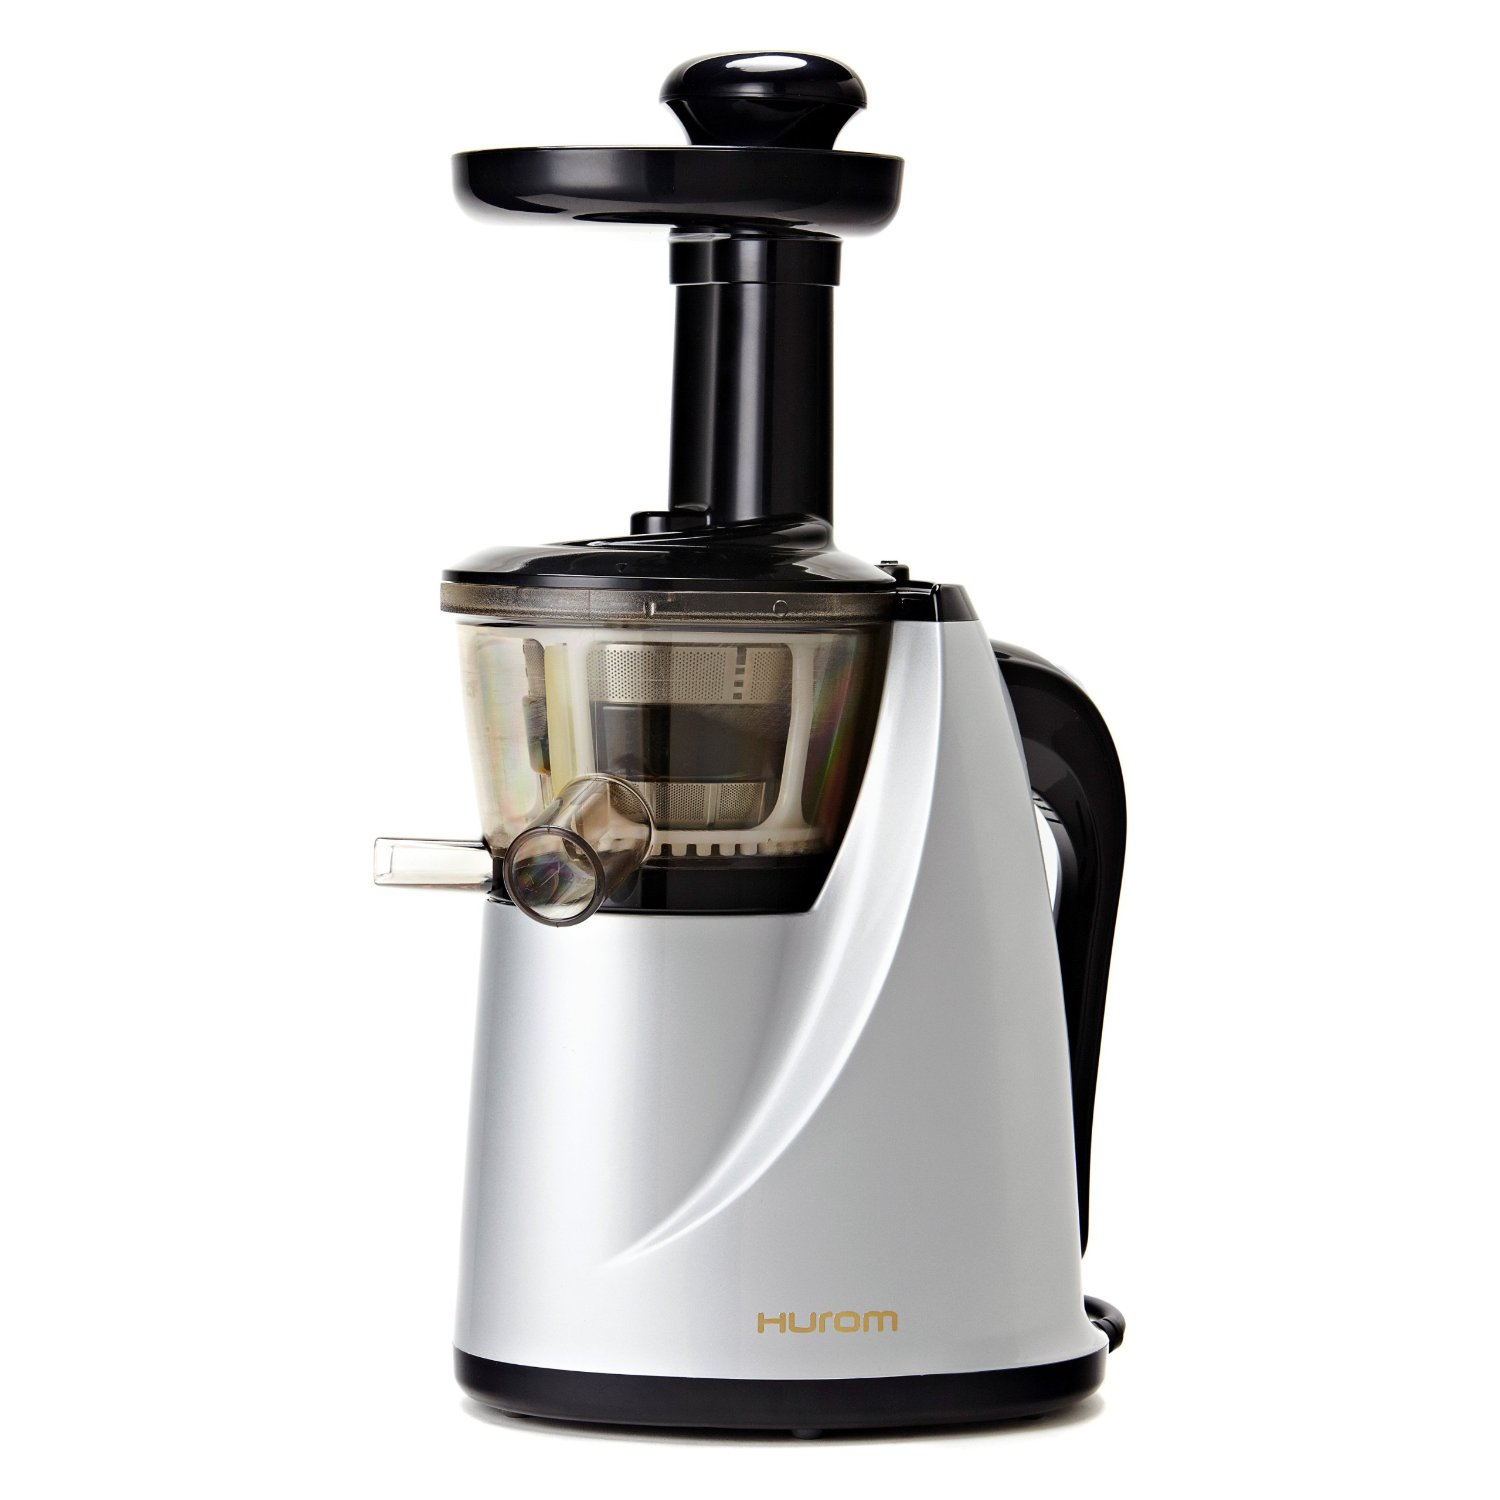 Hurom Hz Slow Juicer Reviews : Hurom Juicer Reviews Hurom Cold Press Juicers Comparison - Best Cold Press Juicers